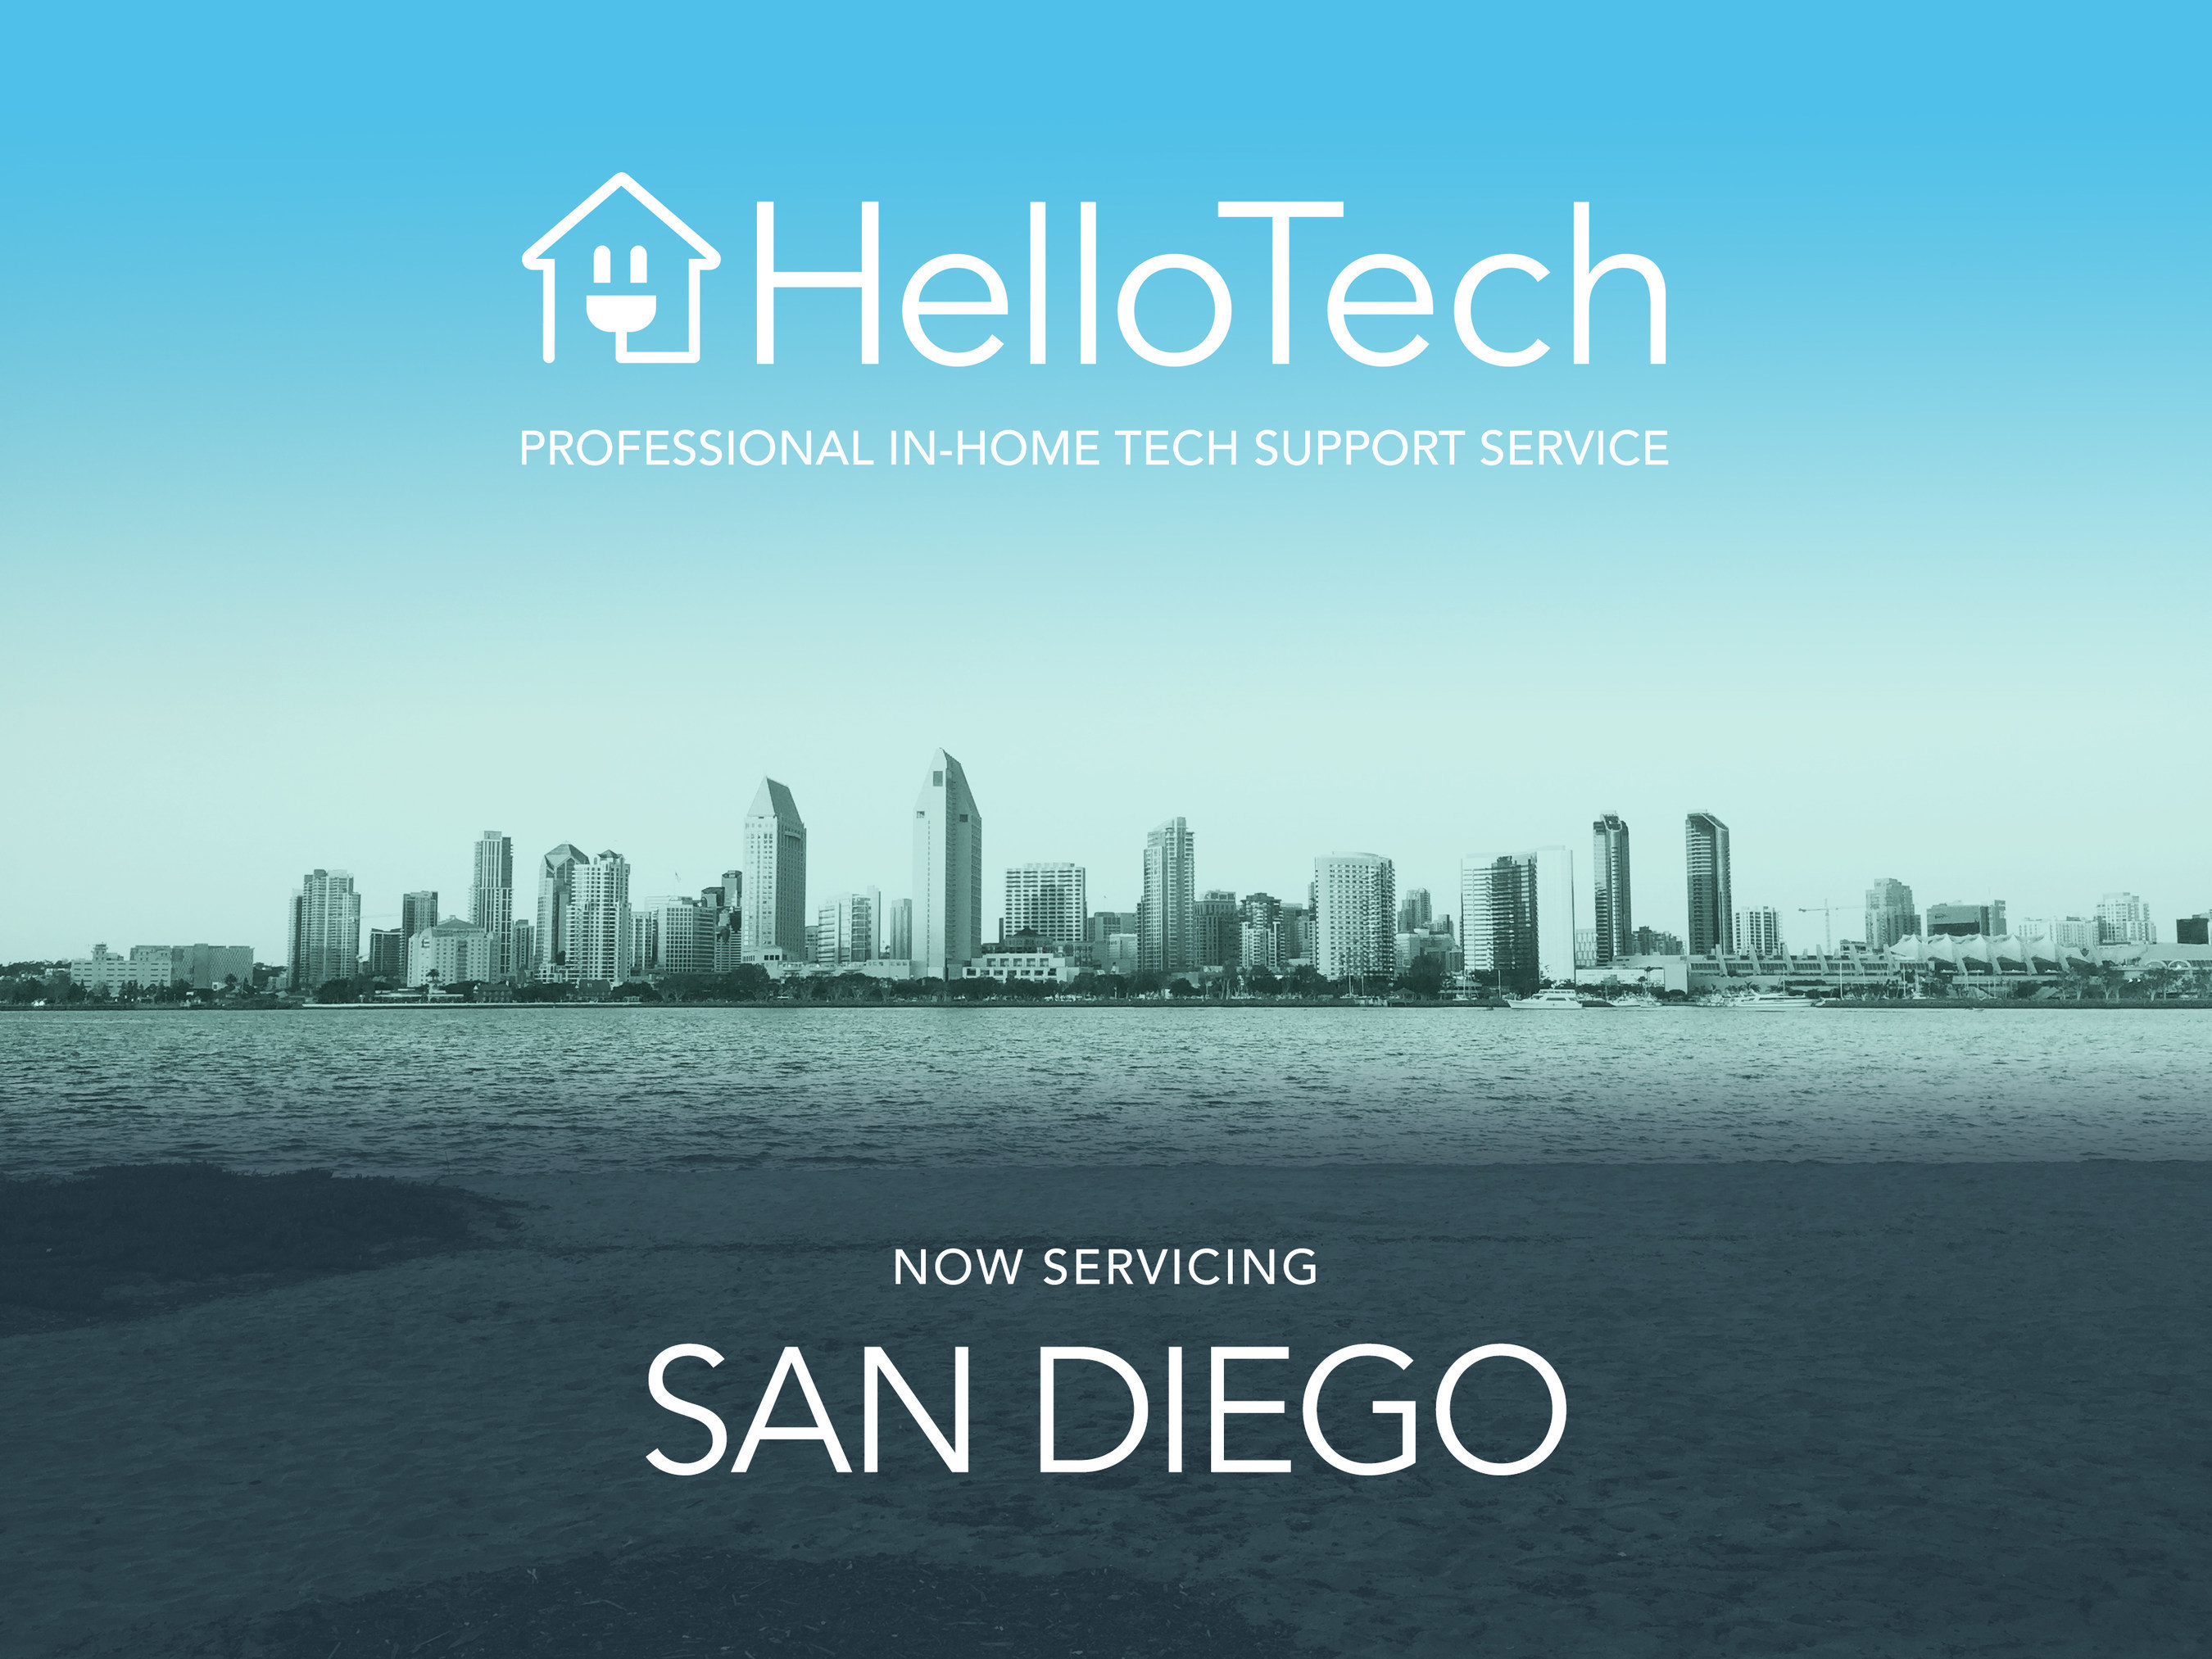 On Demand Tech Support Service HelloTech Expands to San Diego, CA